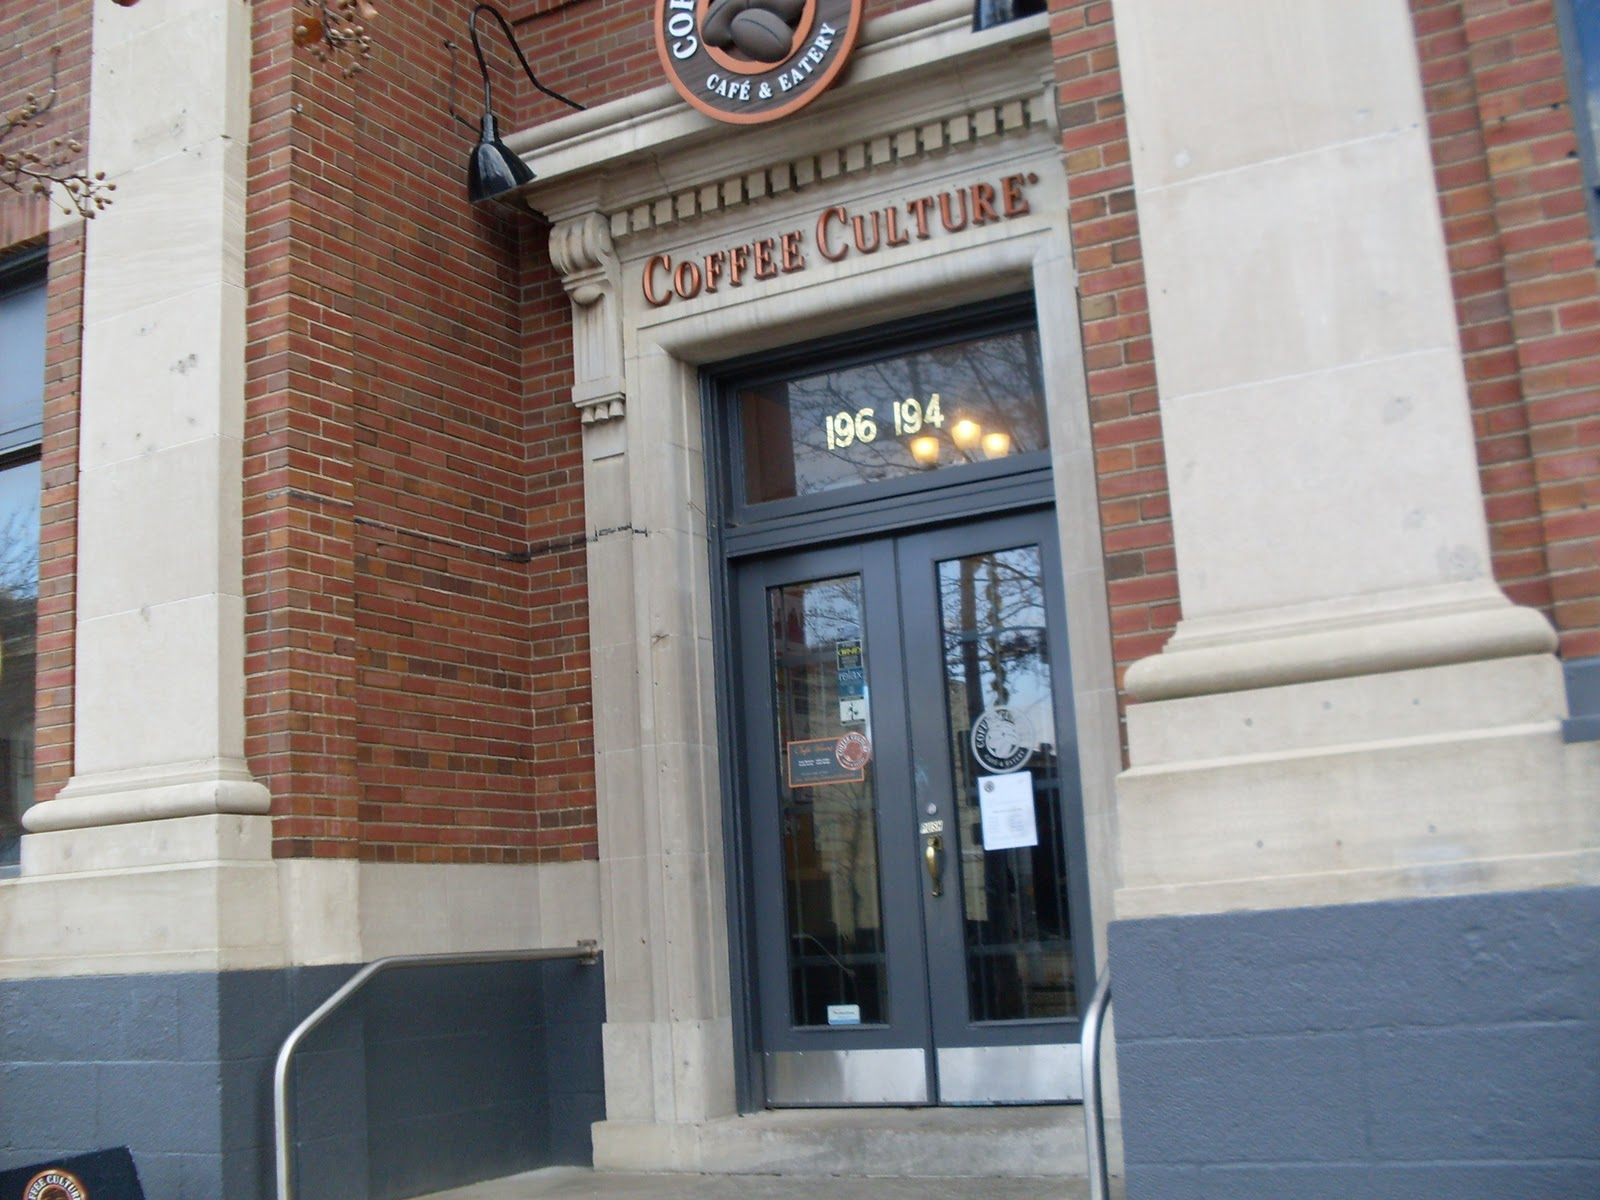 http://1.bp.blogspot.com/_2pQqvhDPWeA/TPvHQEXdt-I/AAAAAAAABkc/67f9QGLMFcE/s1600/Coffee+Culture+196+St+Paul+Street%252C+St+Catharines%252C+ON.JPG